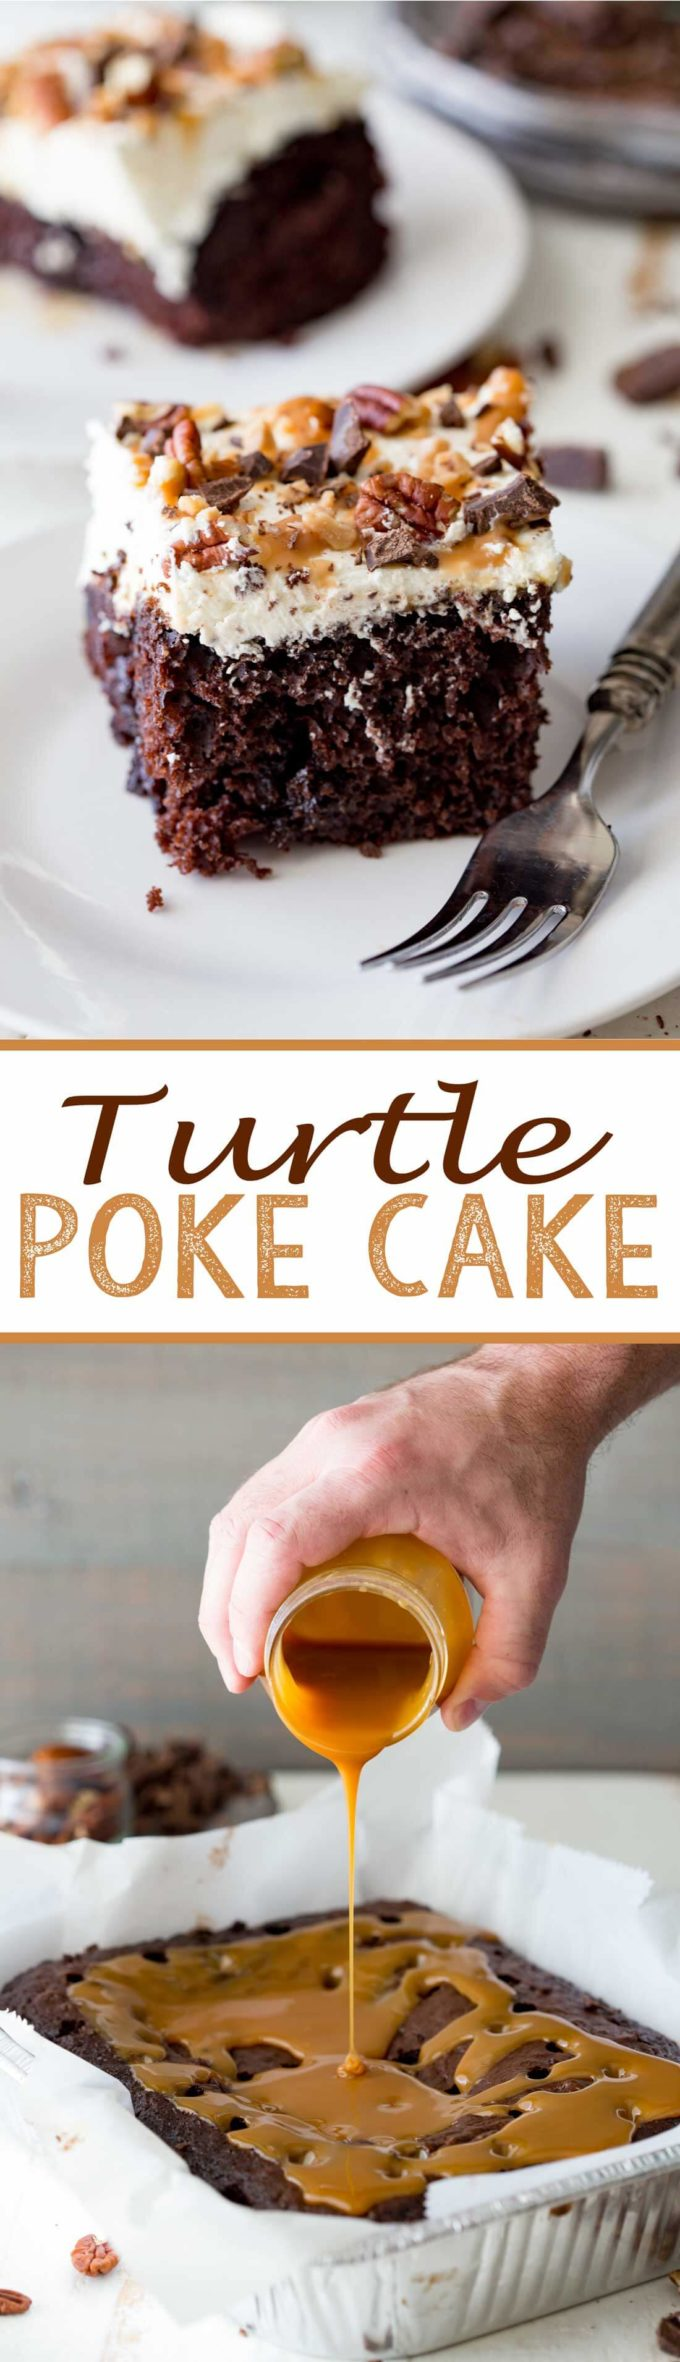 Easy Turtle Poke Cake is a richly decadent chocolate cake, doused in caramel and topped with stabilized whipped cream, chocolate, pecans, and toffee bits.